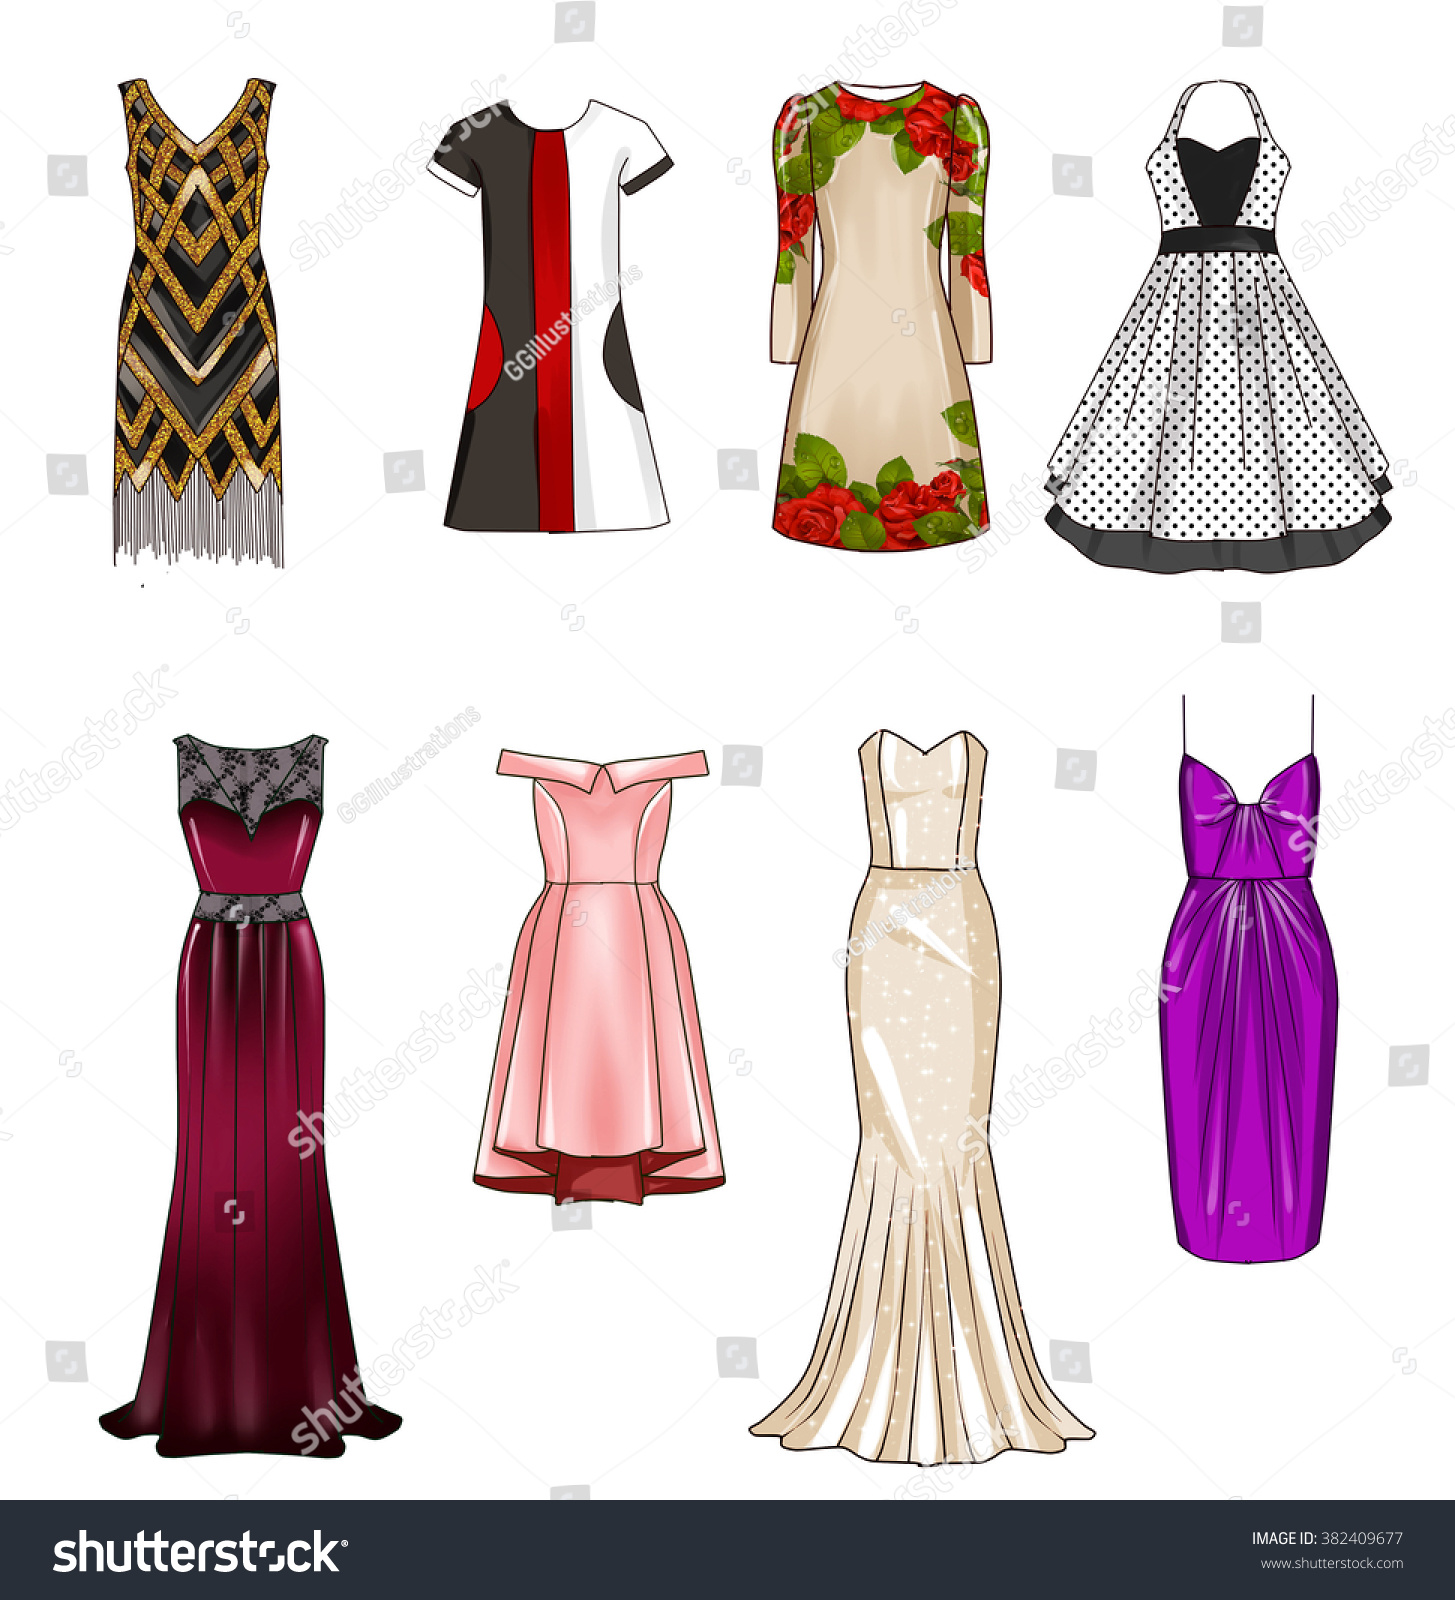 Looks - Sketches Fashion formal video